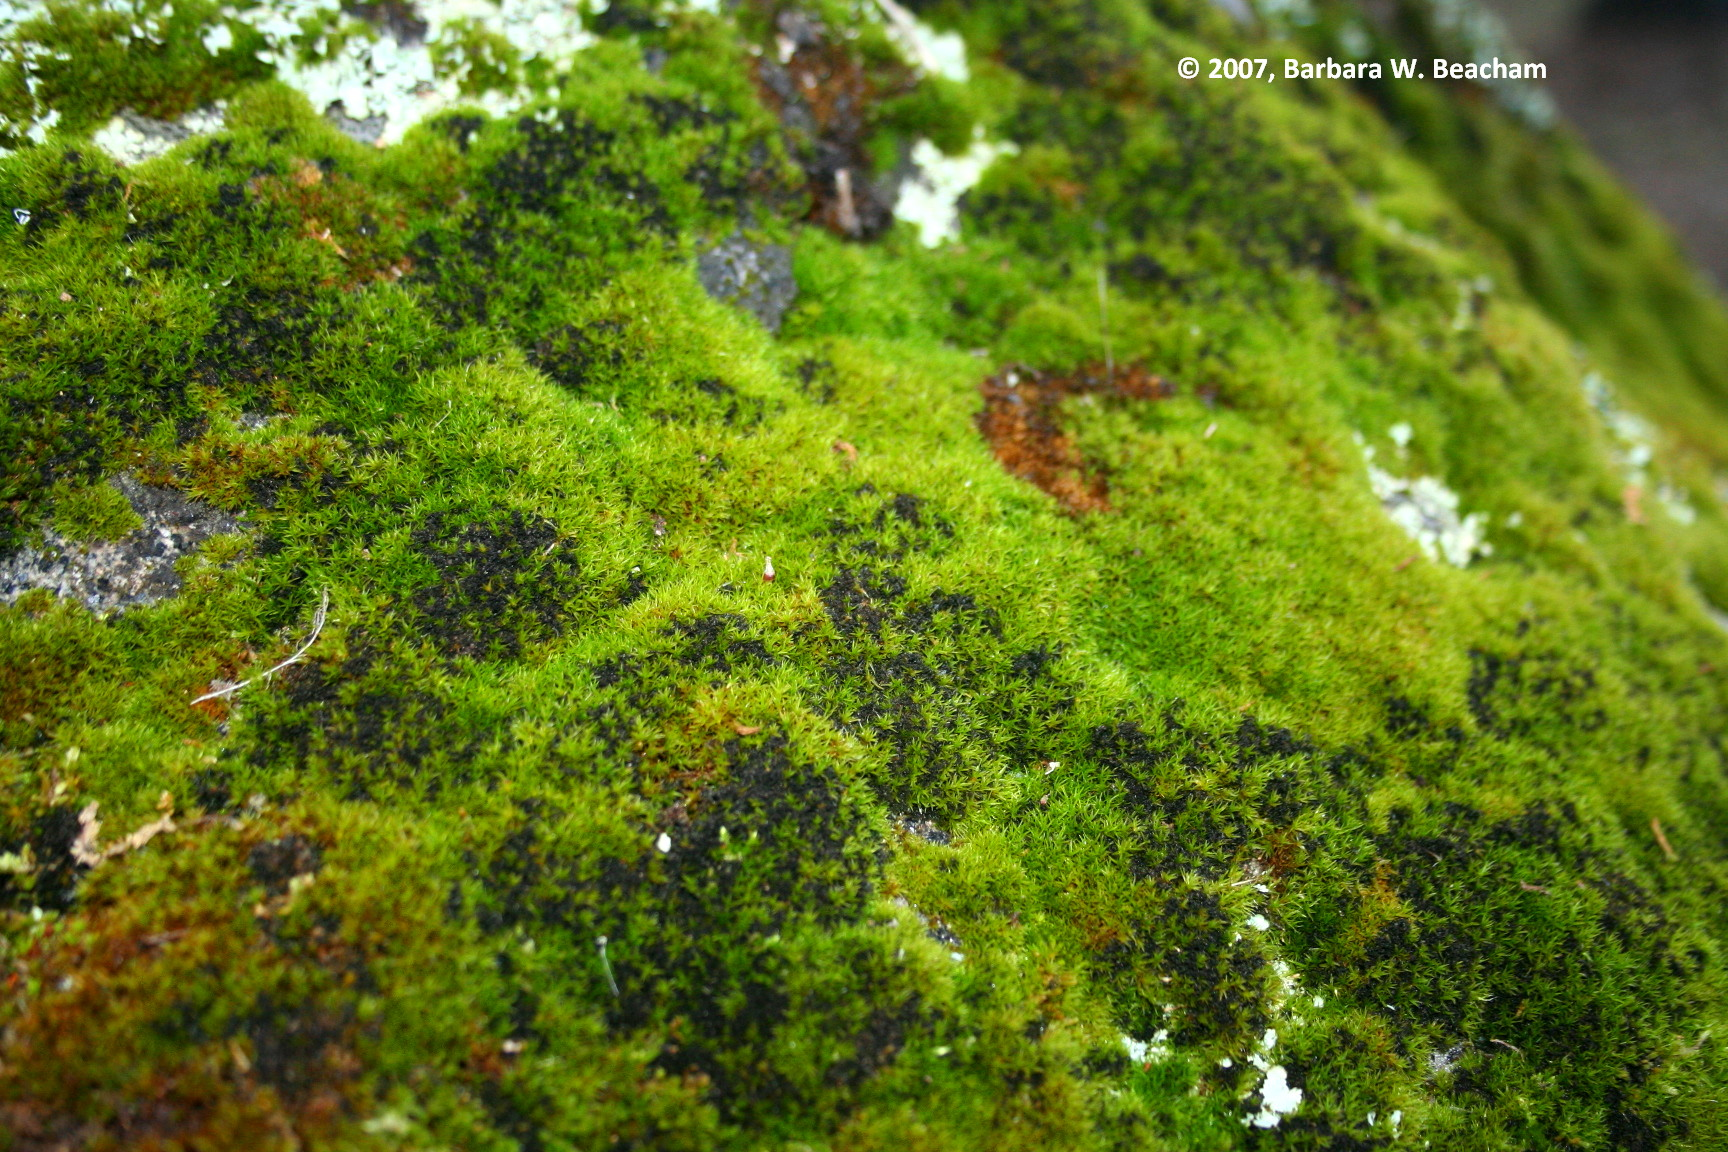 Moss Green | Life In The Foothills